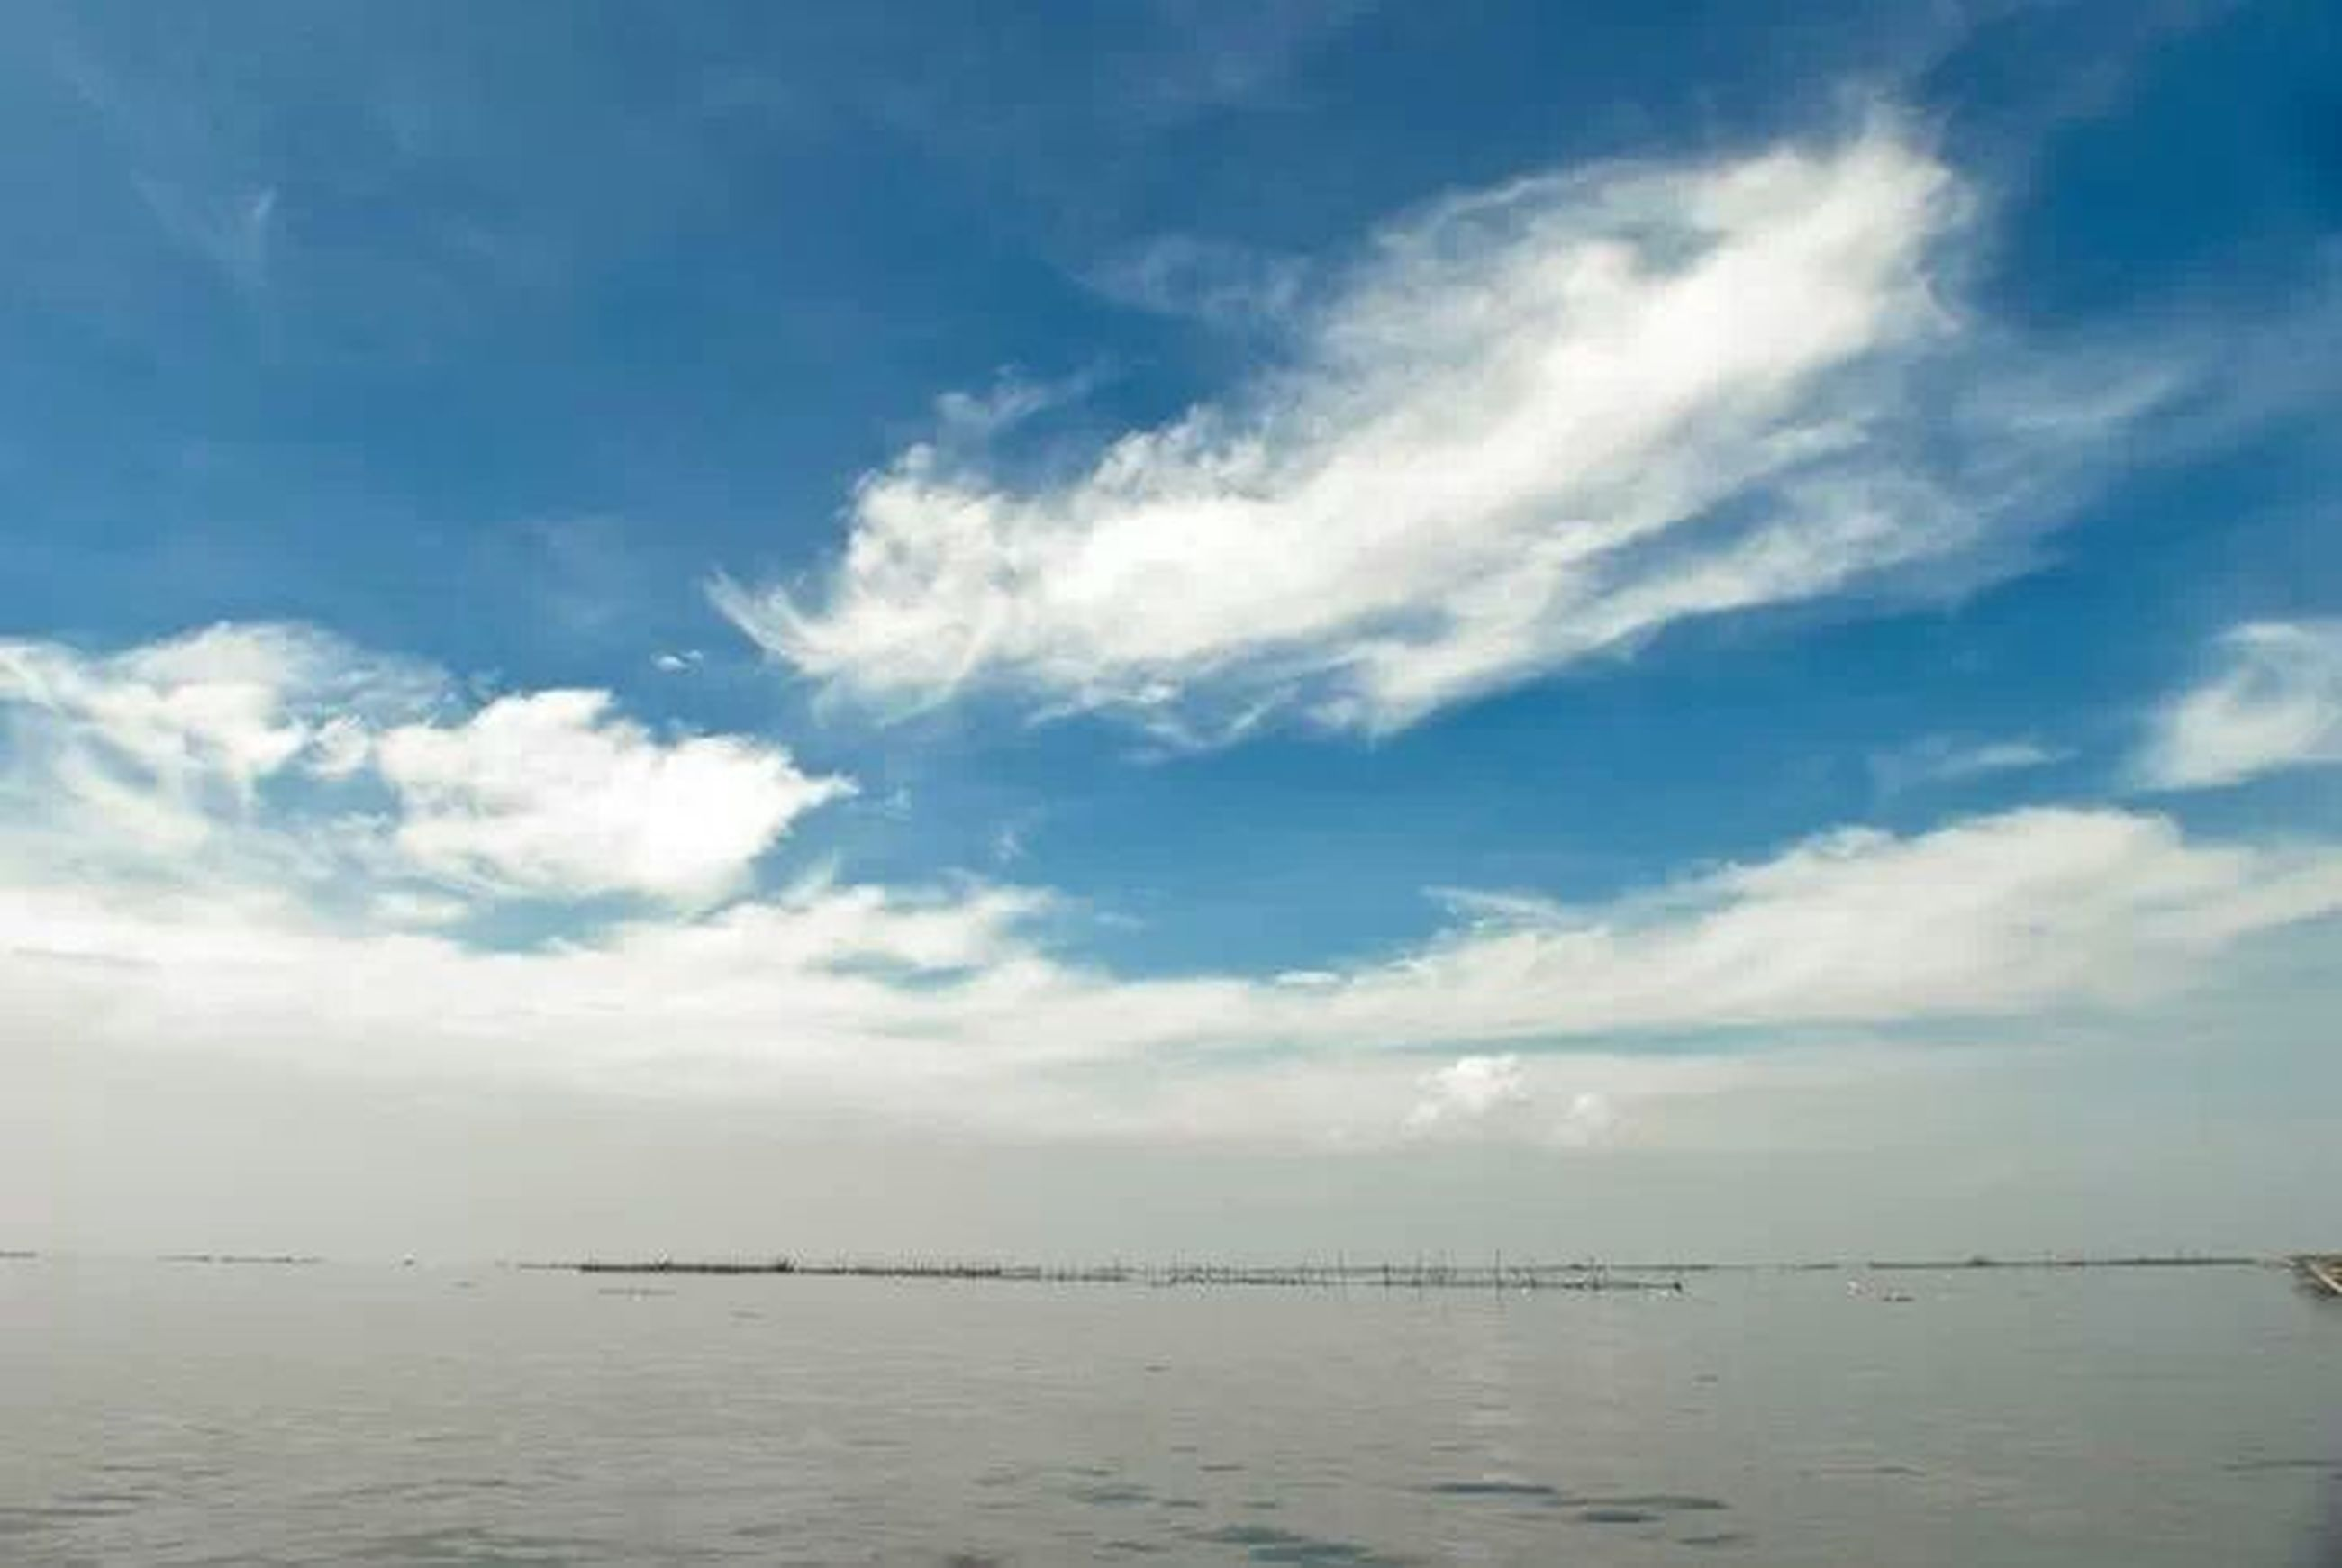 water, sky, tranquility, sea, tranquil scene, waterfront, scenics, beauty in nature, cloud - sky, horizon over water, nature, idyllic, cloud, blue, cloudy, rippled, day, outdoors, seascape, calm